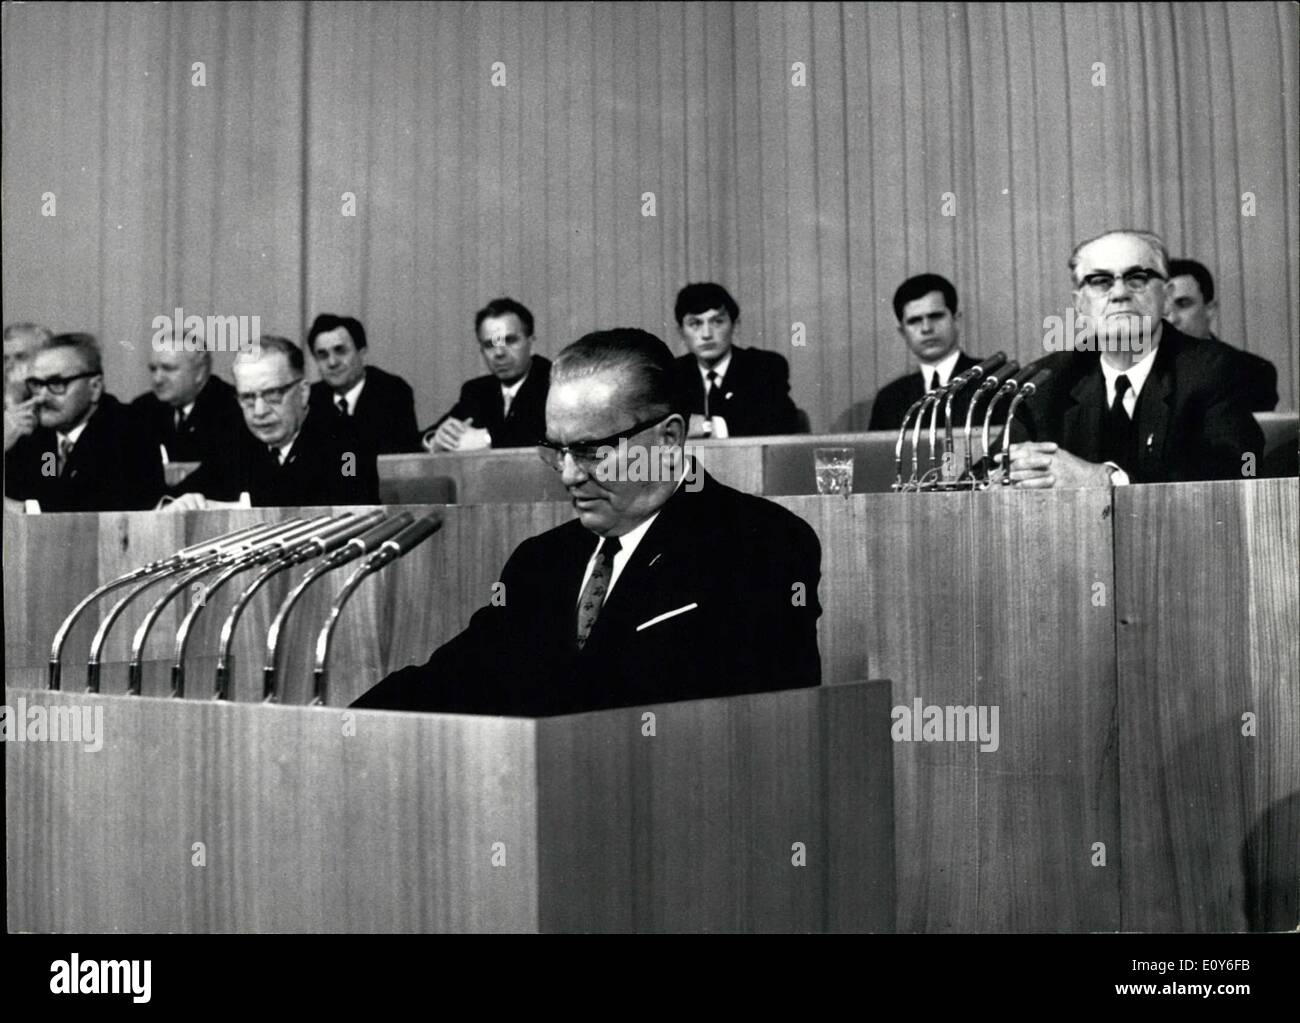 Mar. 03, 1969 - The ninth congress of the league of communists of Yugoslavia. The IX Congress of the LCY opened - Stock Image